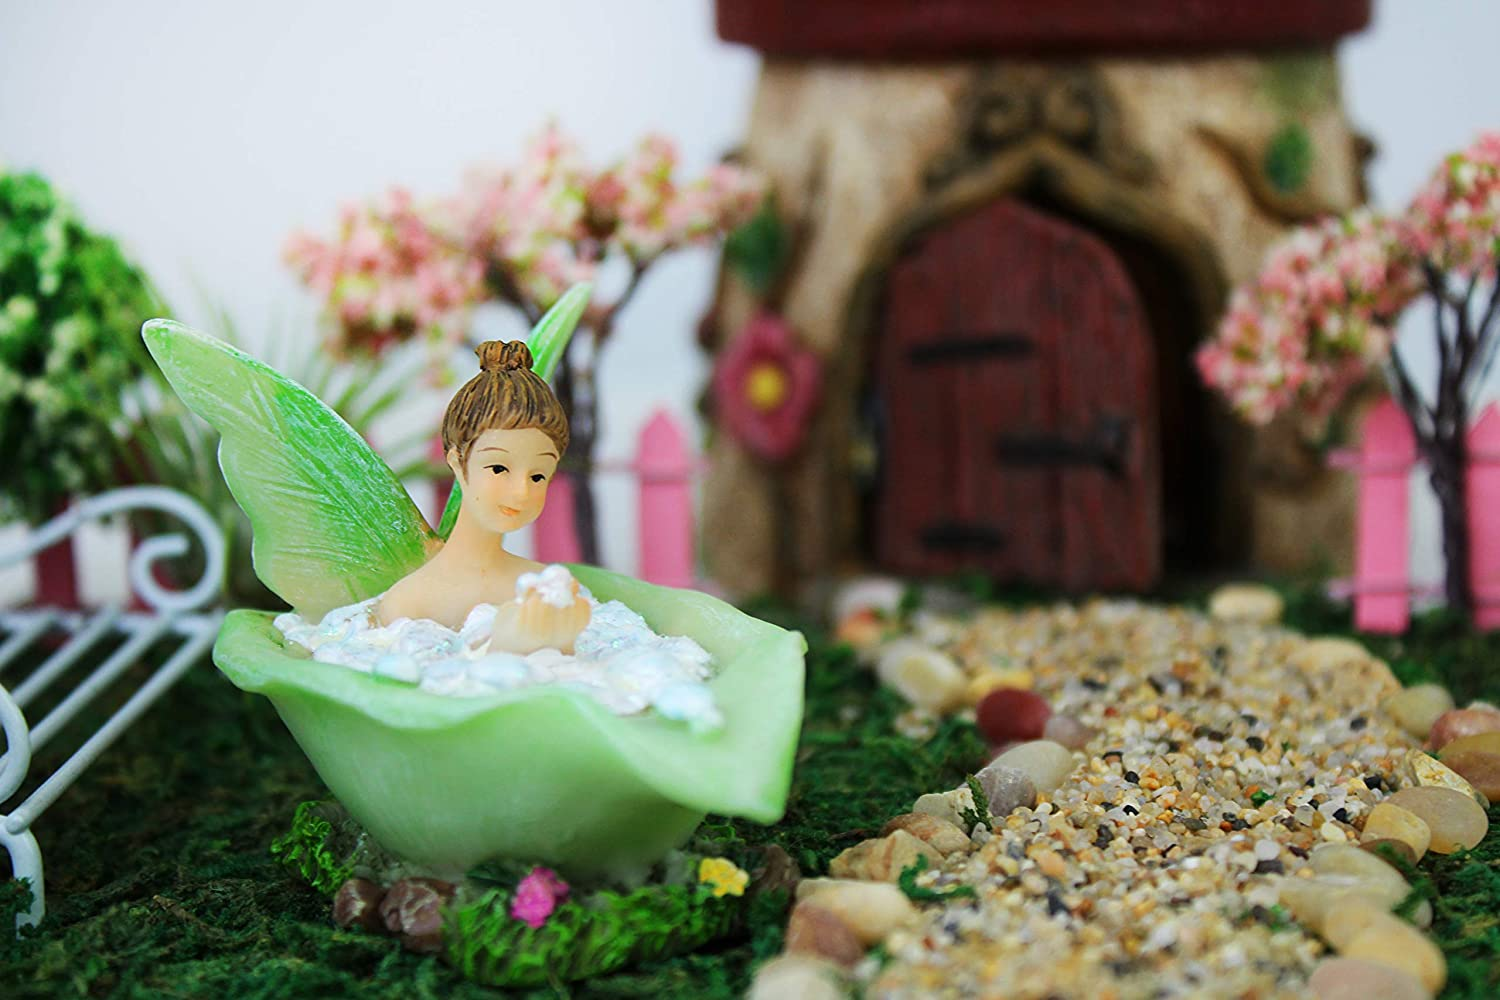 Merveilleux Amazon.com: NW Wholesaler   Fairy Garden Fairy Figurines Hand Painted  Miniature Fairies (Bath Fairy): Garden U0026 Outdoor